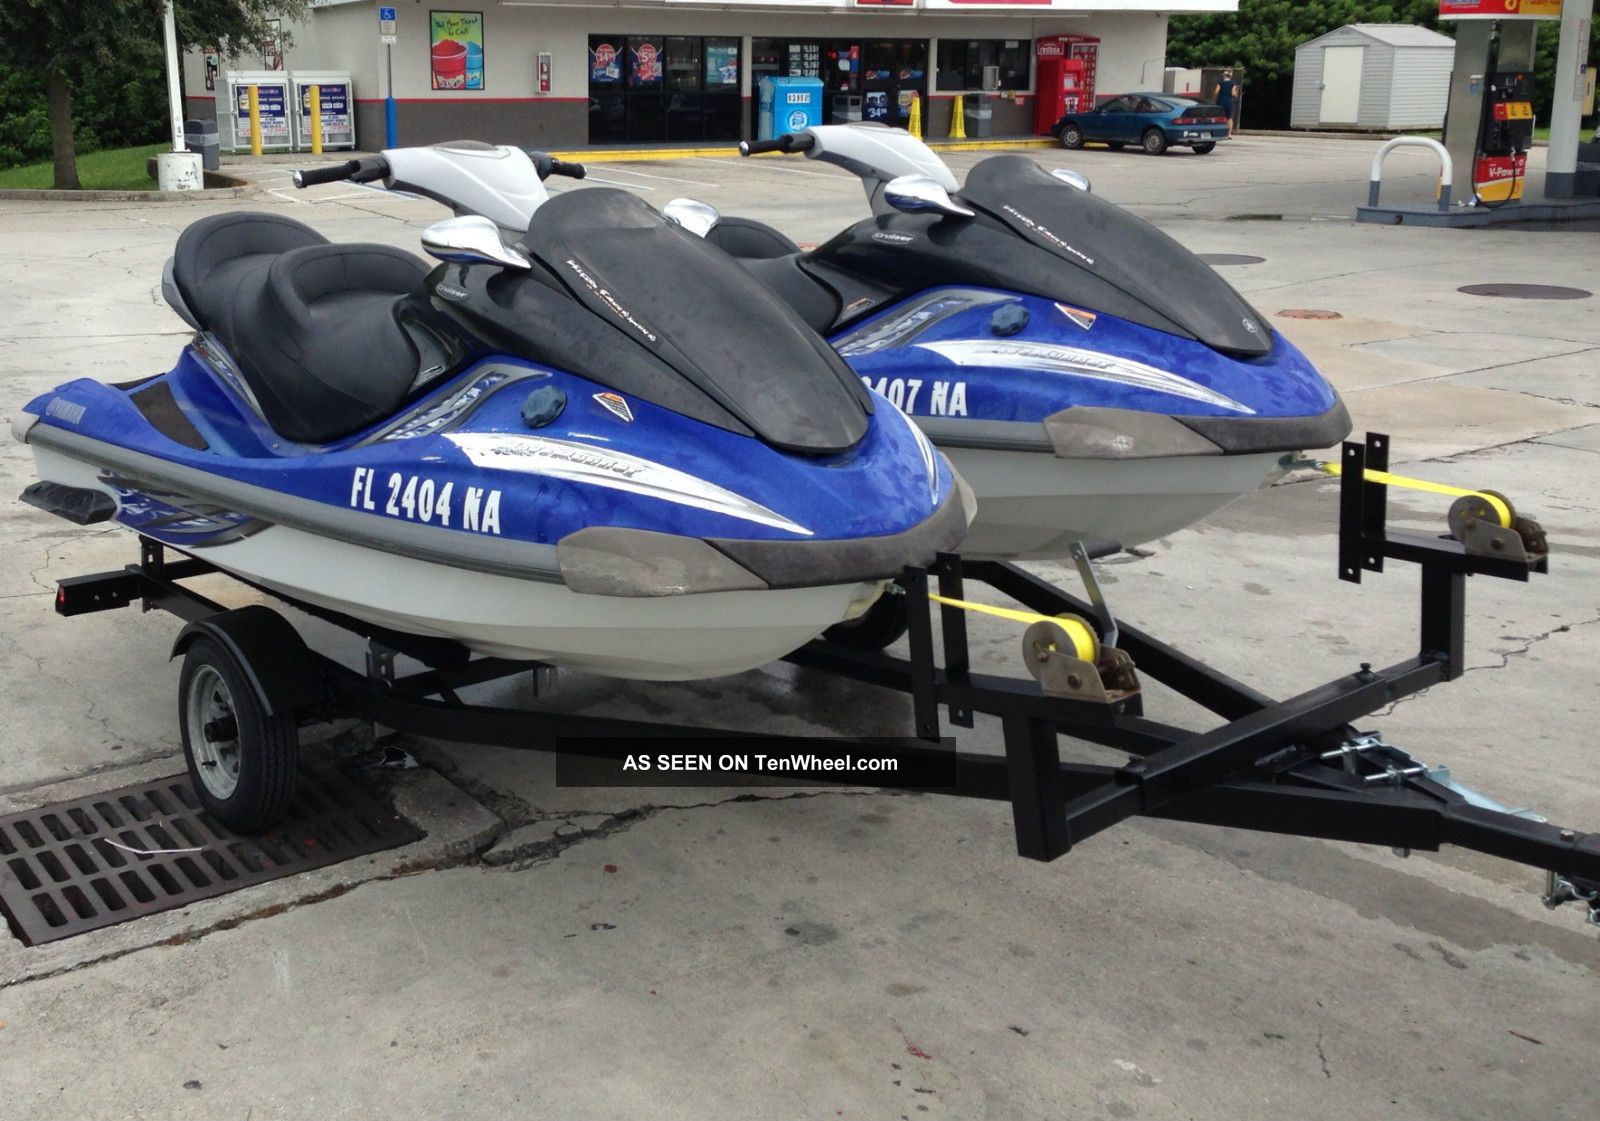 2005 Yamaha Fx Ho Cruiser Jet Boats photo